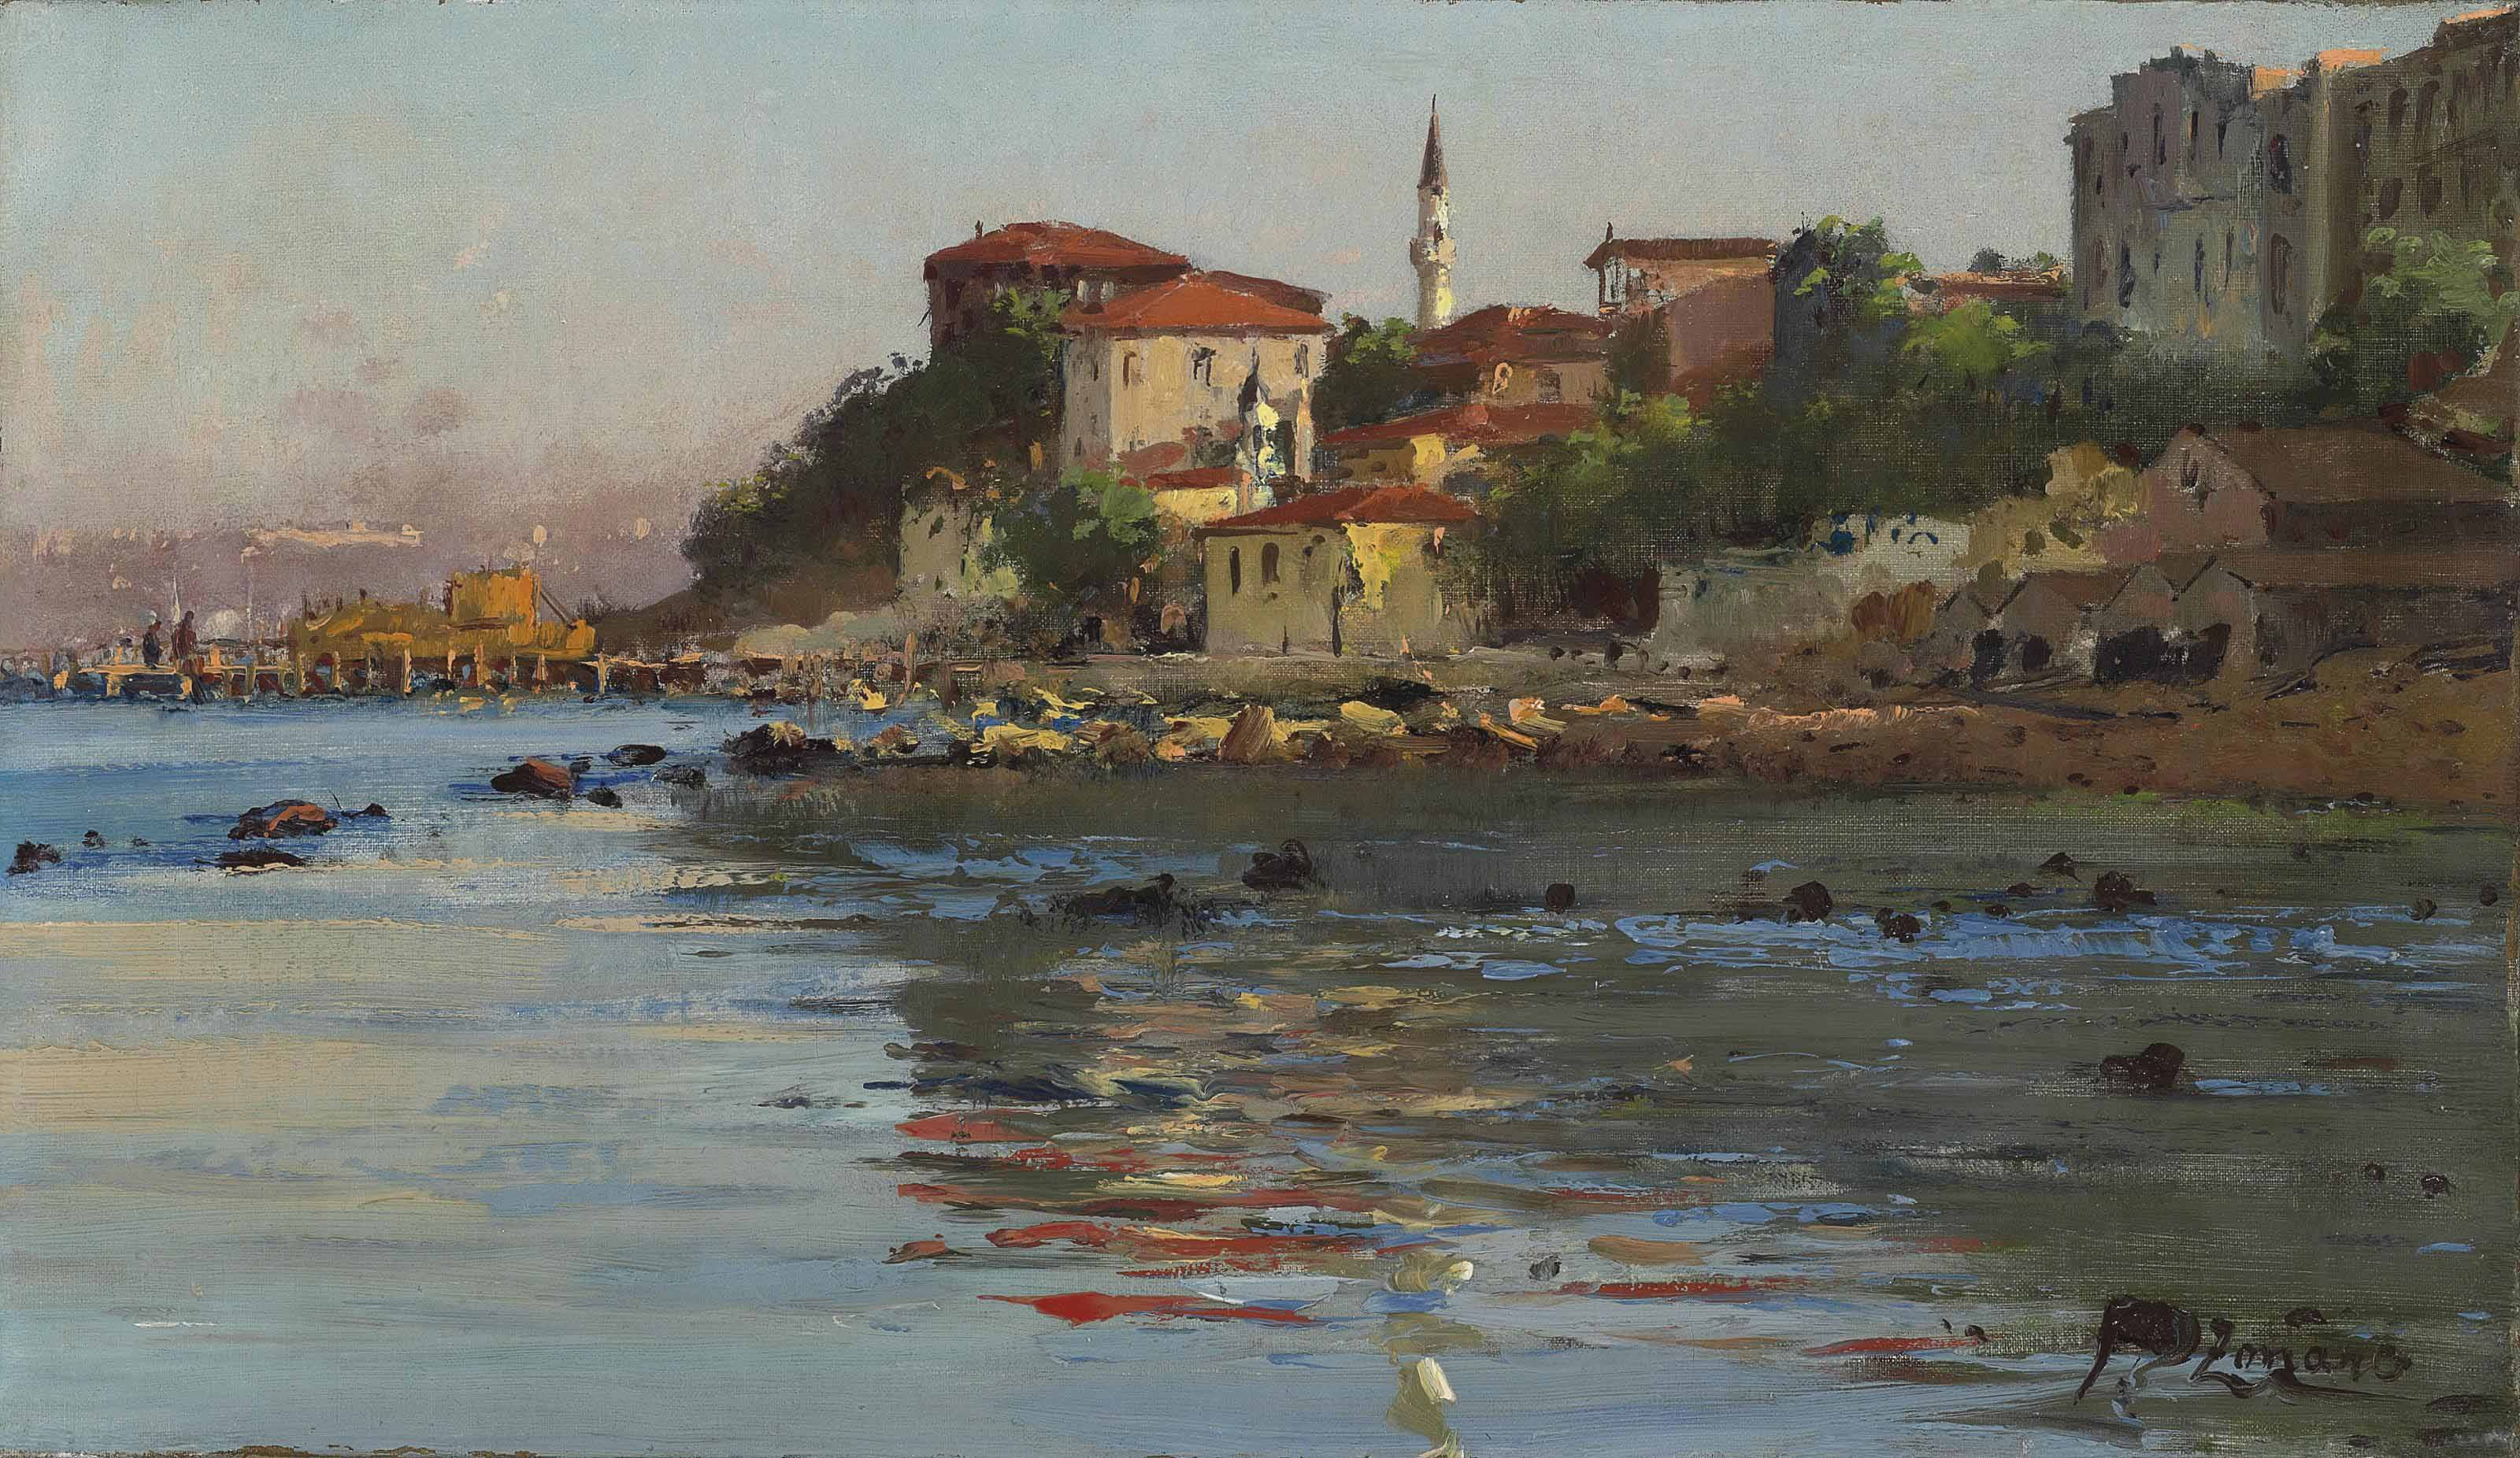 The shores of the Bosphorus